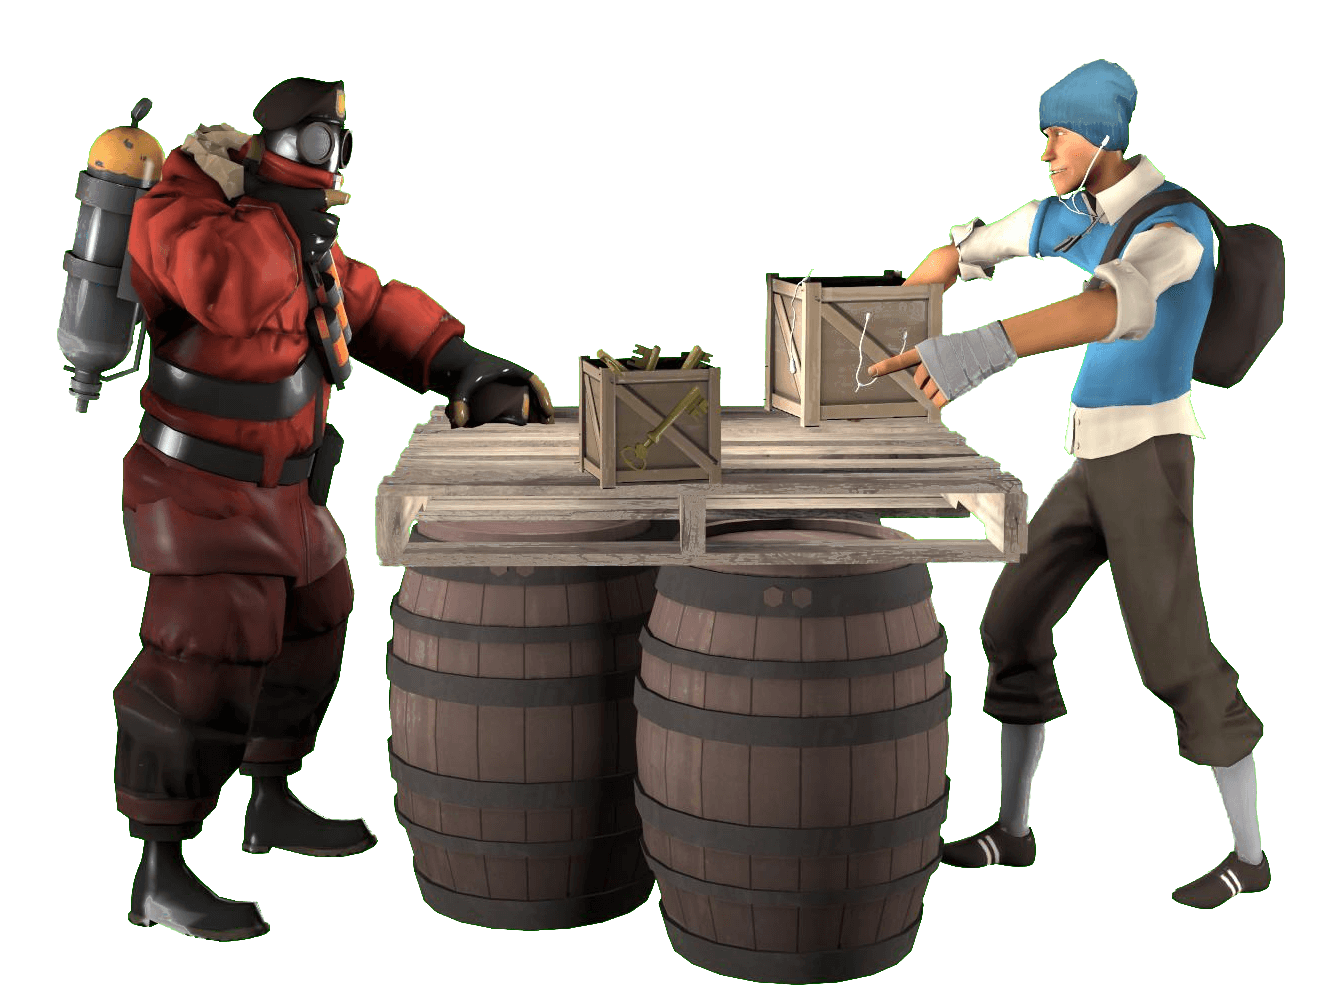 Tf2 Unusual Trade Bots